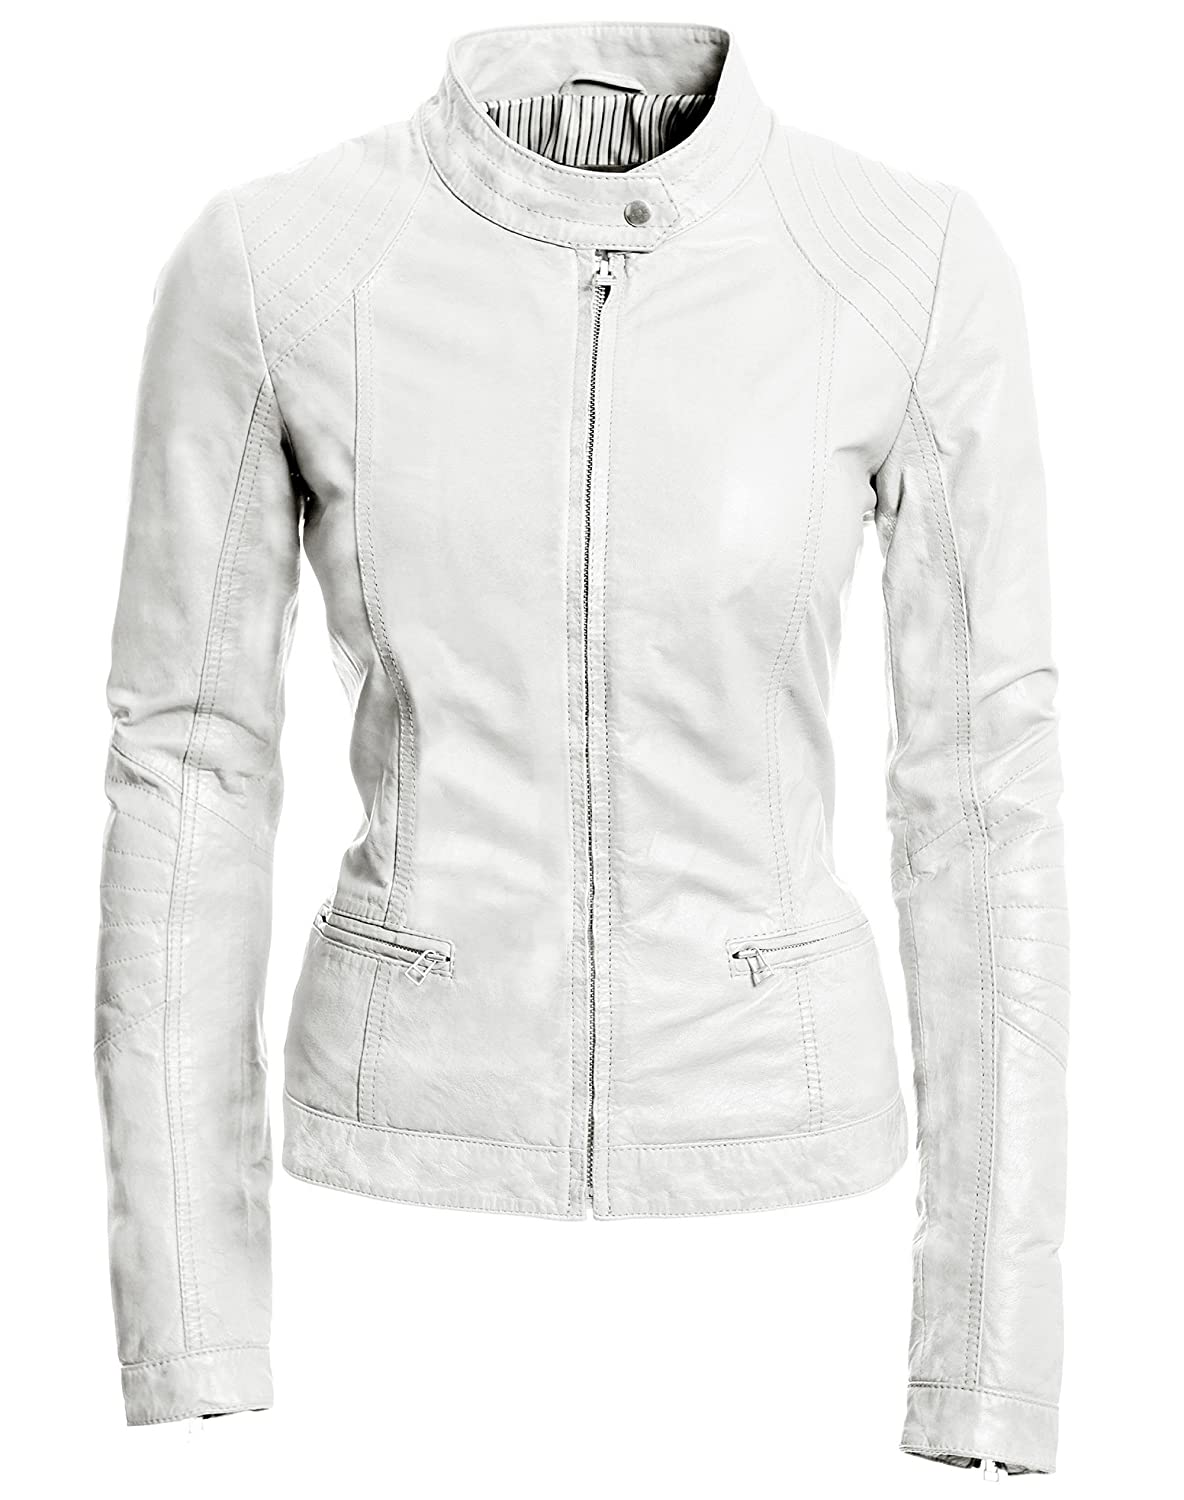 coolhides Womens White Fashion Genuine Leather Jacket